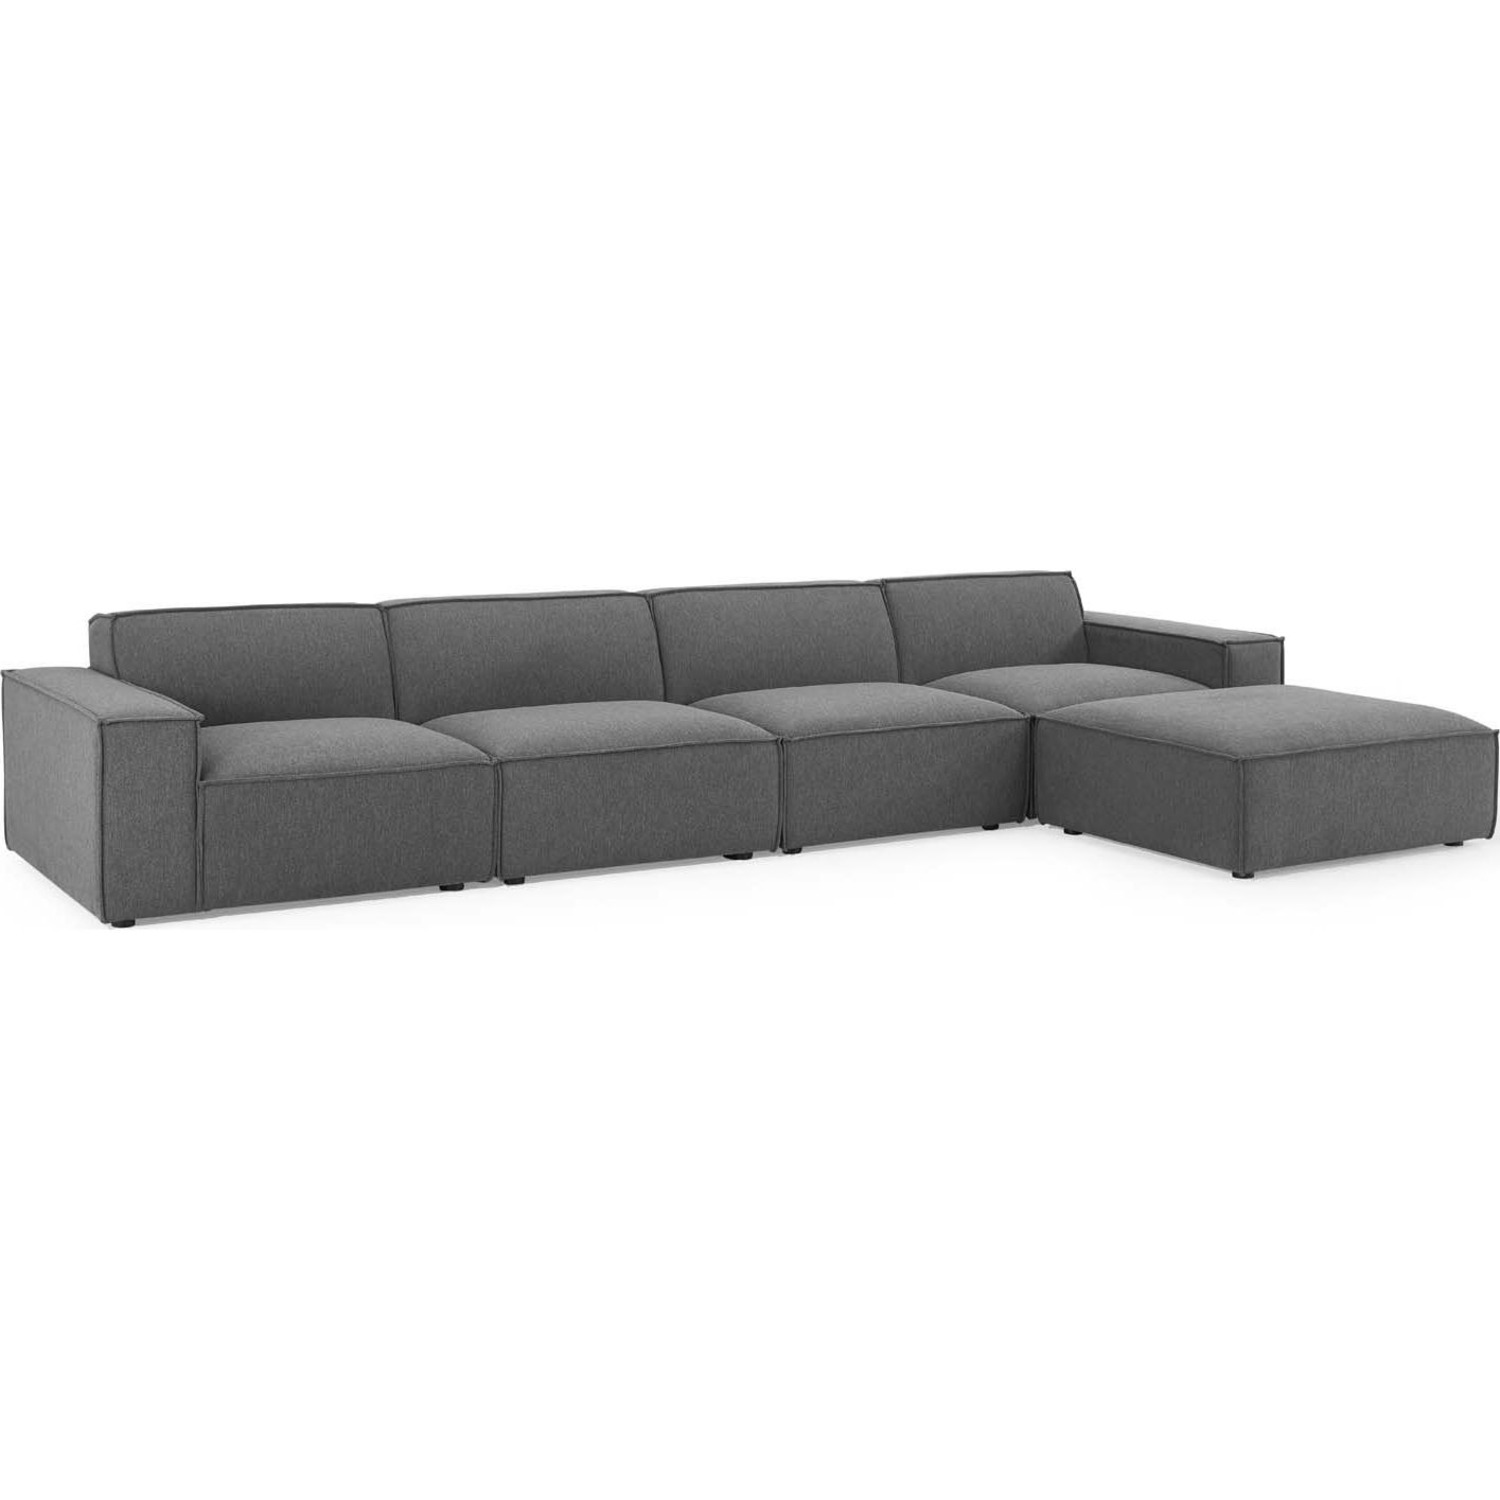 5-Piece Sectional Sofa In Charcoal Fabric - image-0